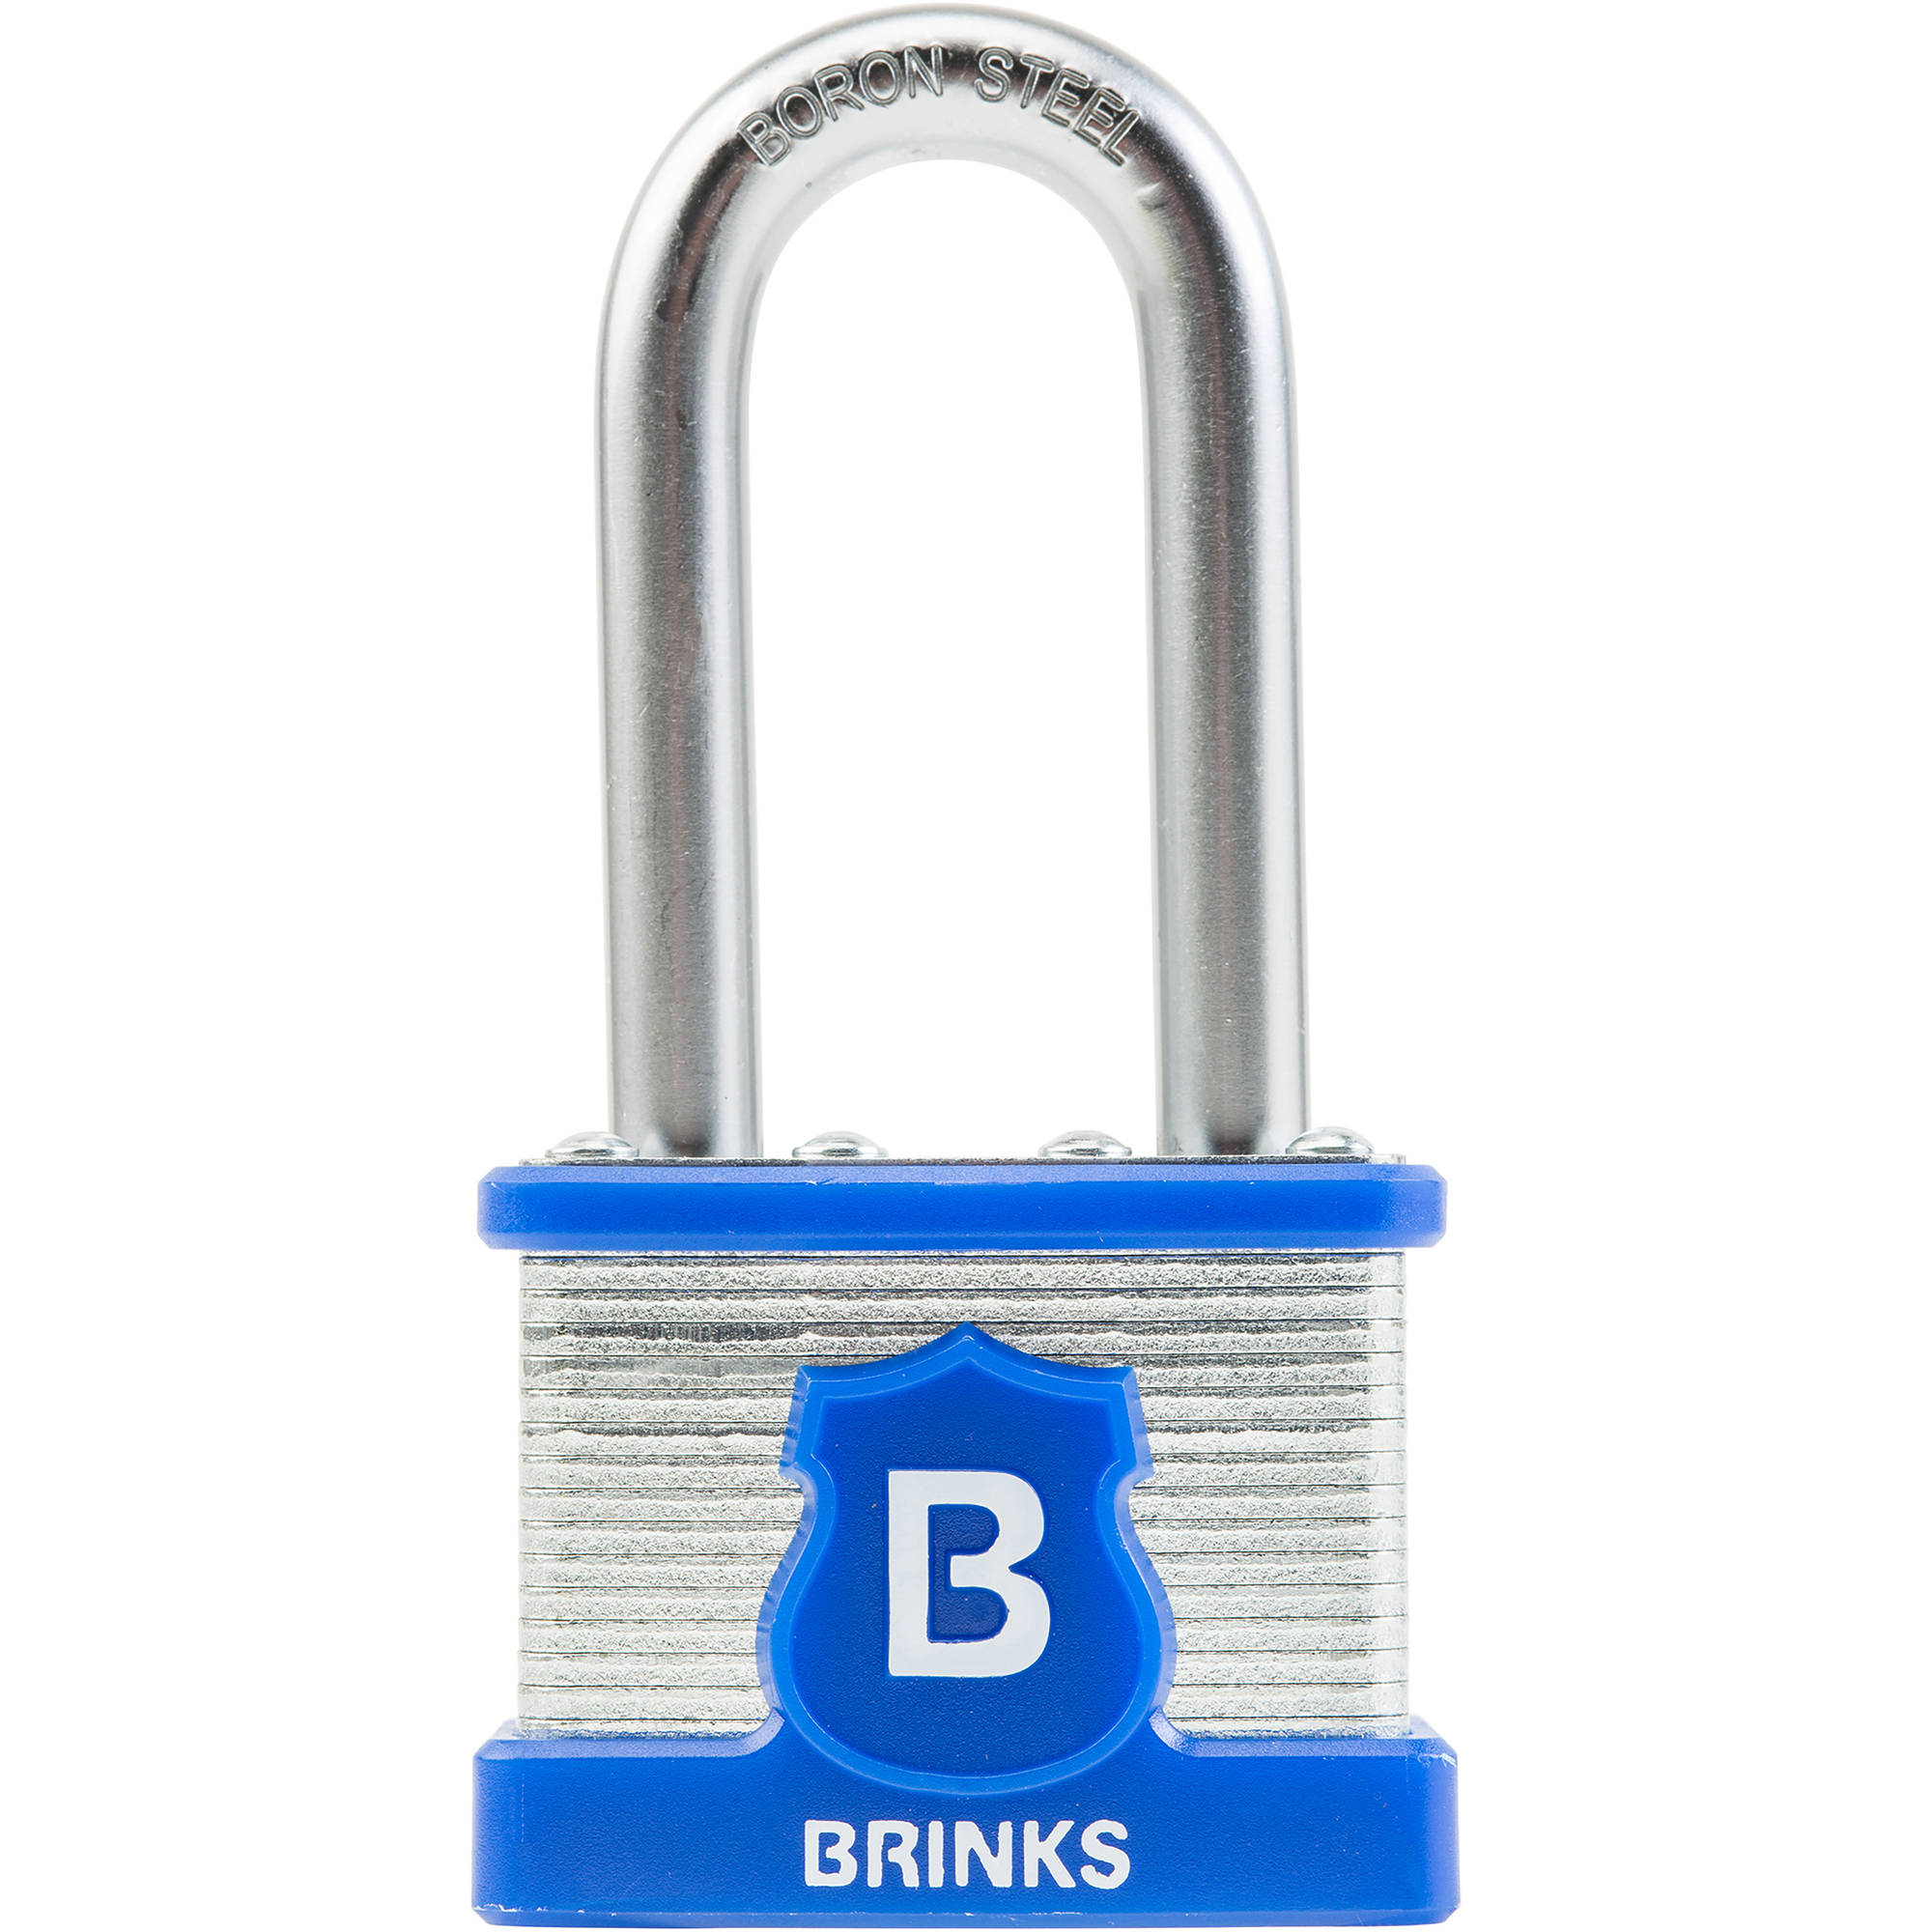 65MM SHACKLE TALL WEATHER PROOF LAMINATED LOCK STEEL PADLOCK WITH 4 KEY